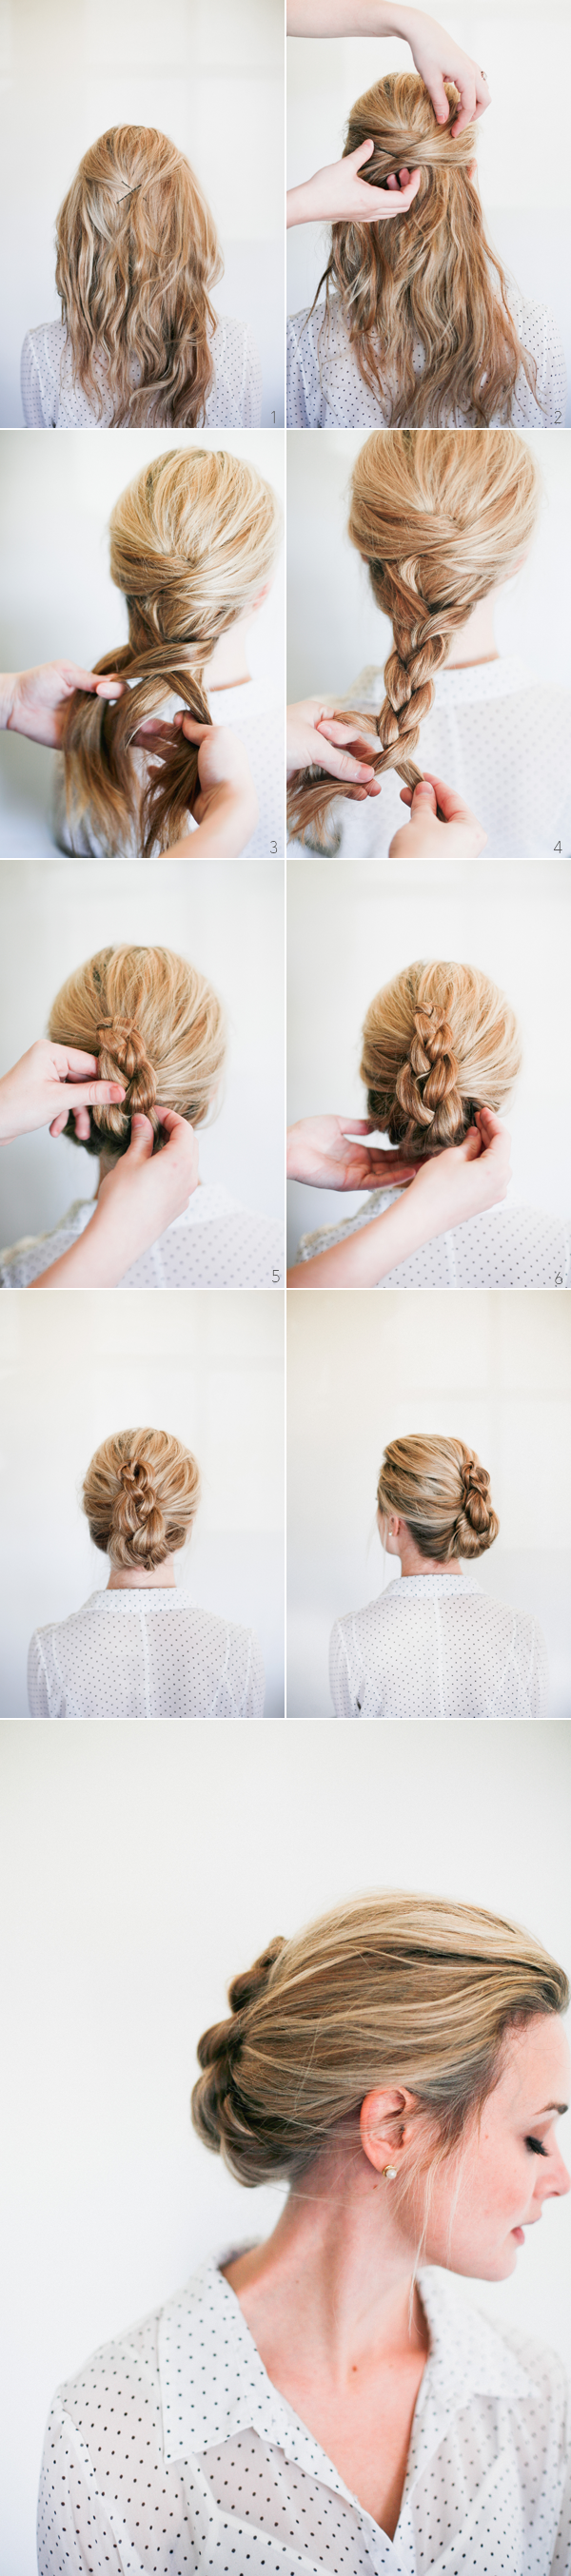 French braided twist cute and easy hairstyle ideas and